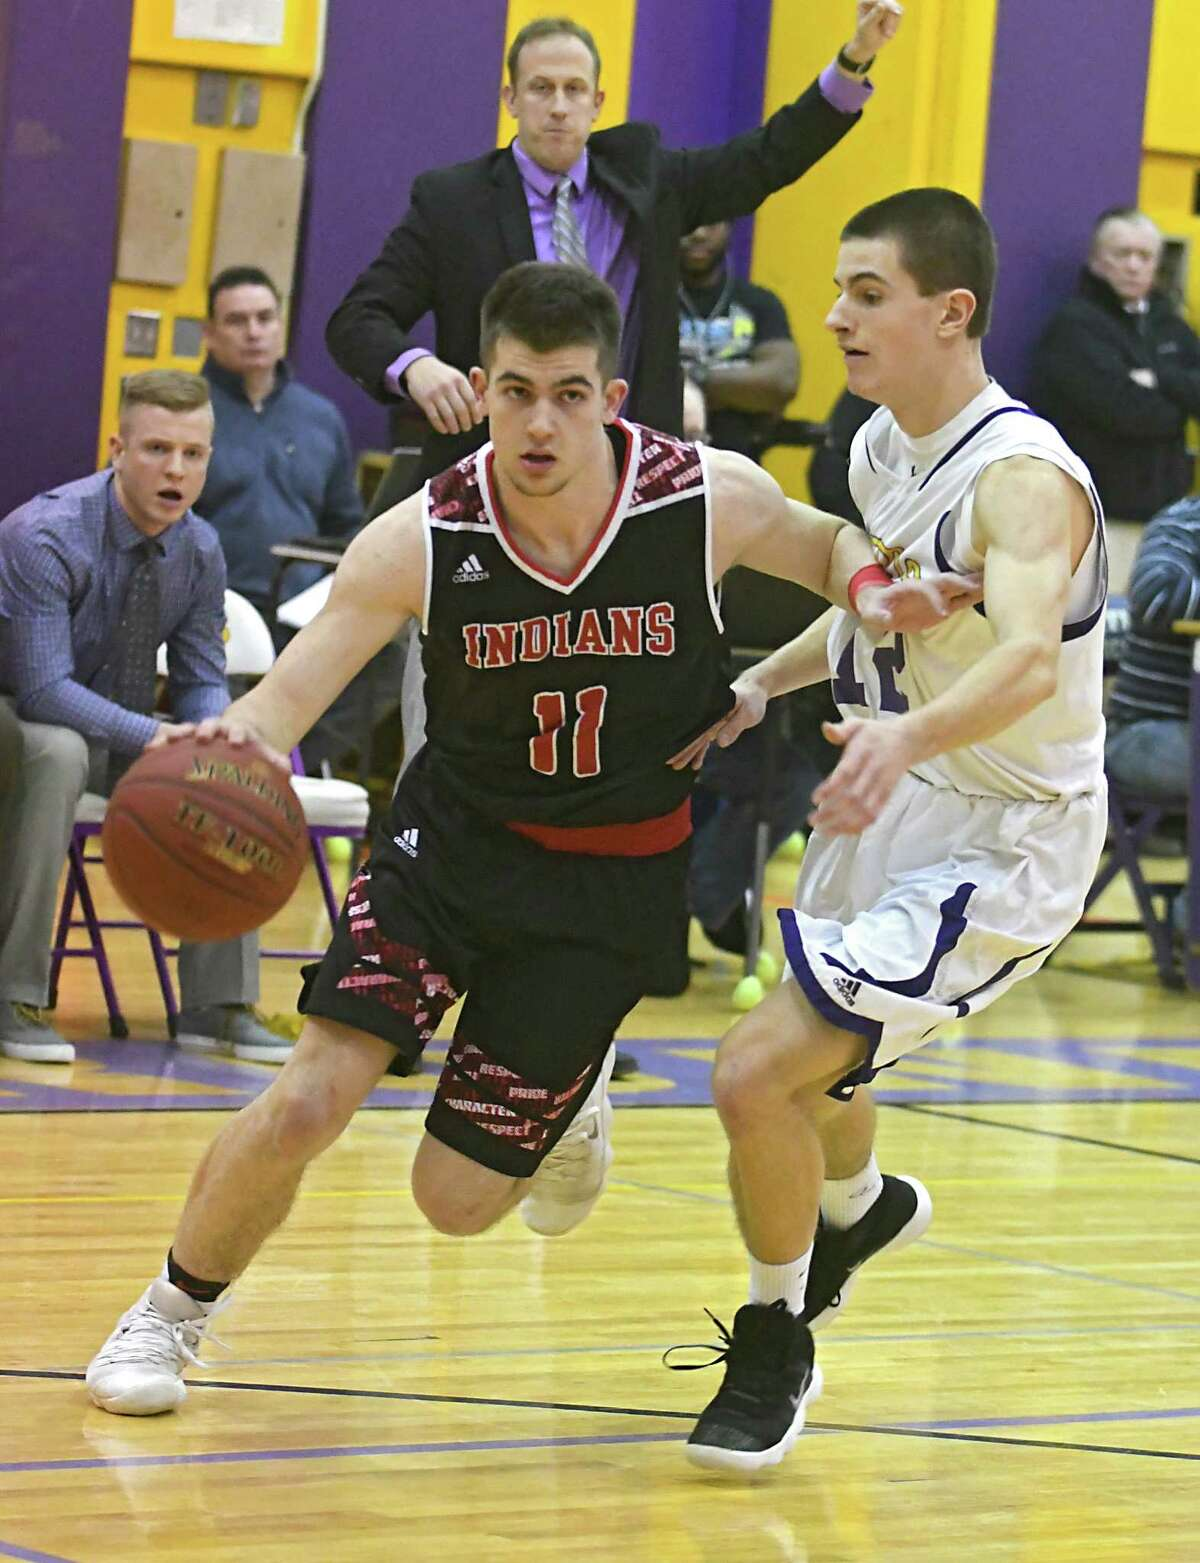 Glens Falls' Joseph Girard III drives to the basket guarded by Amsterdam's Jeffrey Brennan during a basketball game on Tuesday, Jan. 30, 2018 in Amsterdam, N.Y. (Lori Van Buren/Times Union)